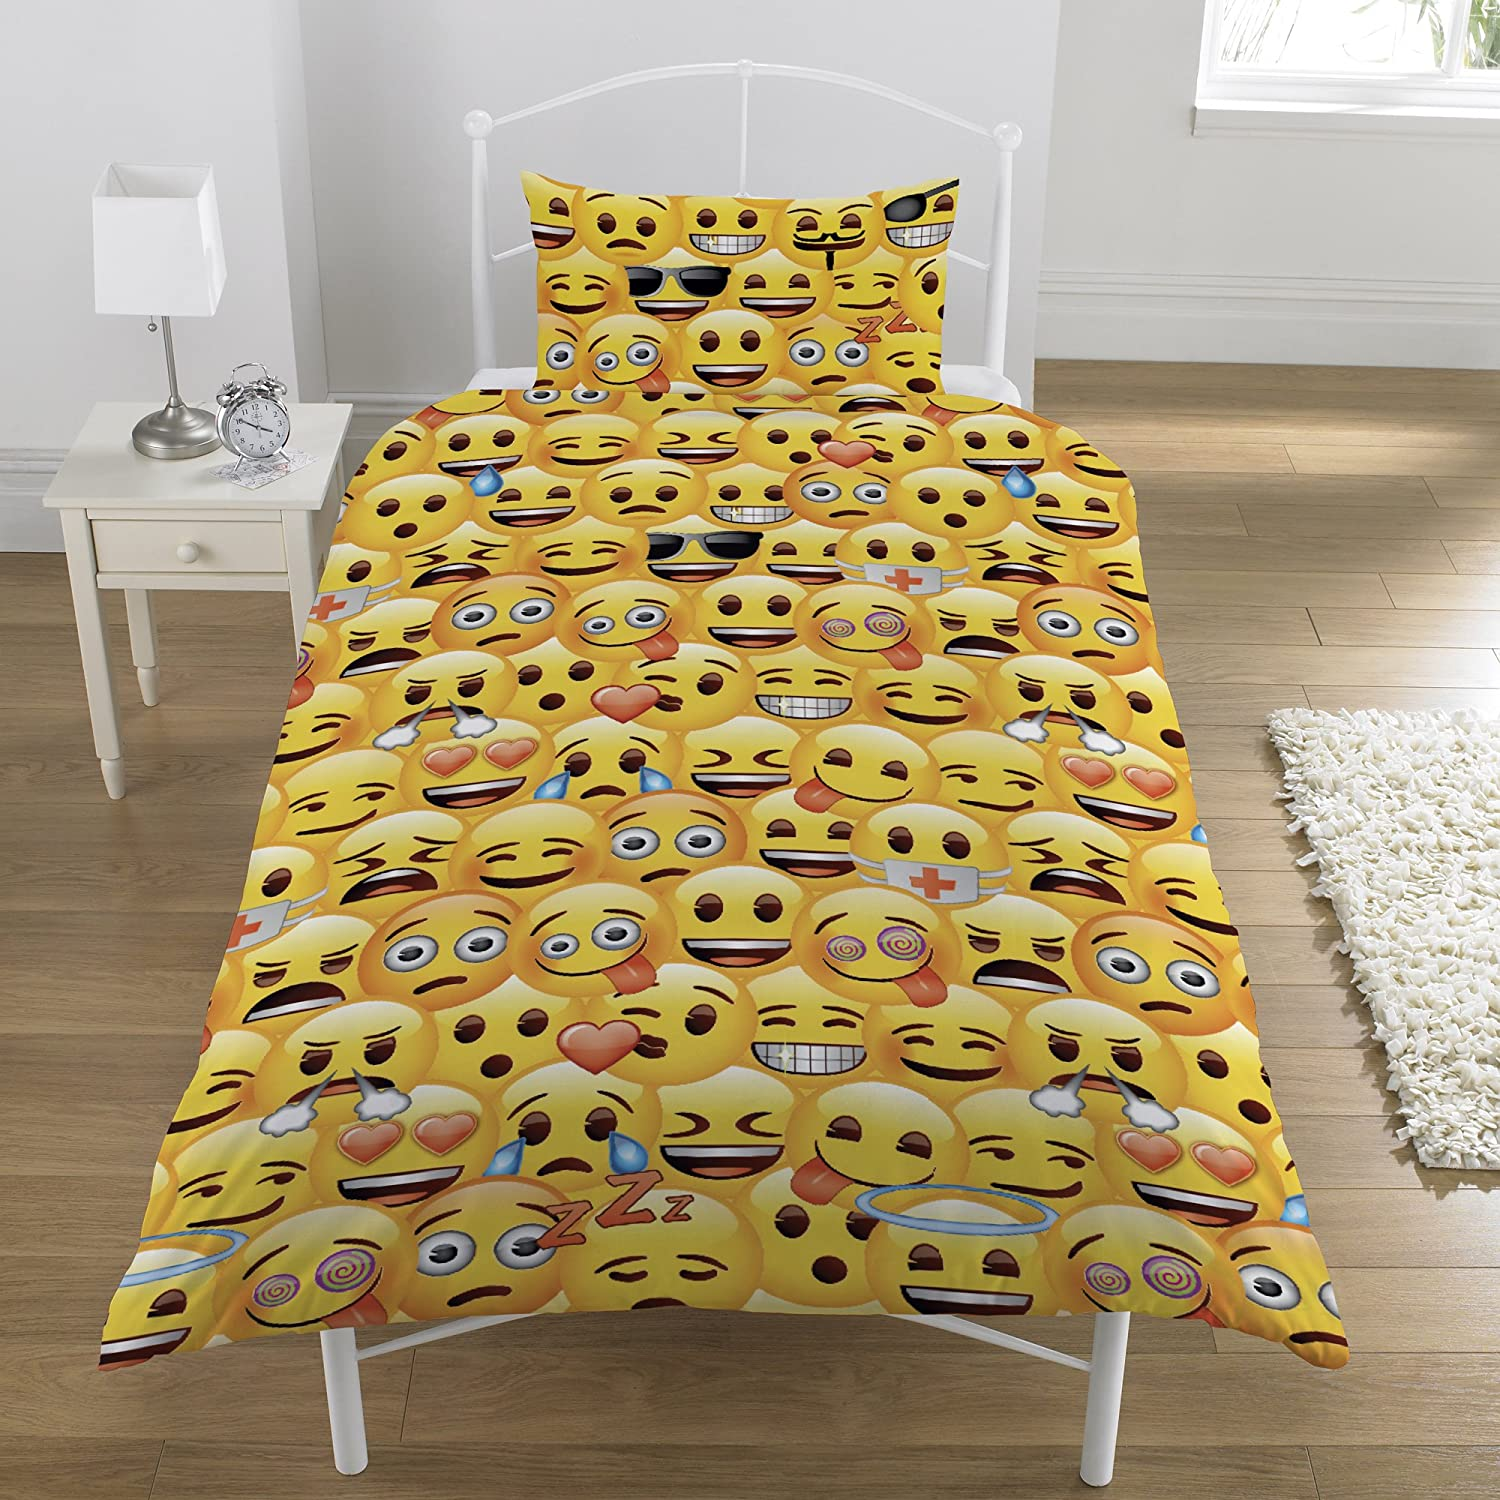 Emoji Rotary Duvet Set, Yellow, Single Dreamtex Ltd SR1-EMO-JO1-12